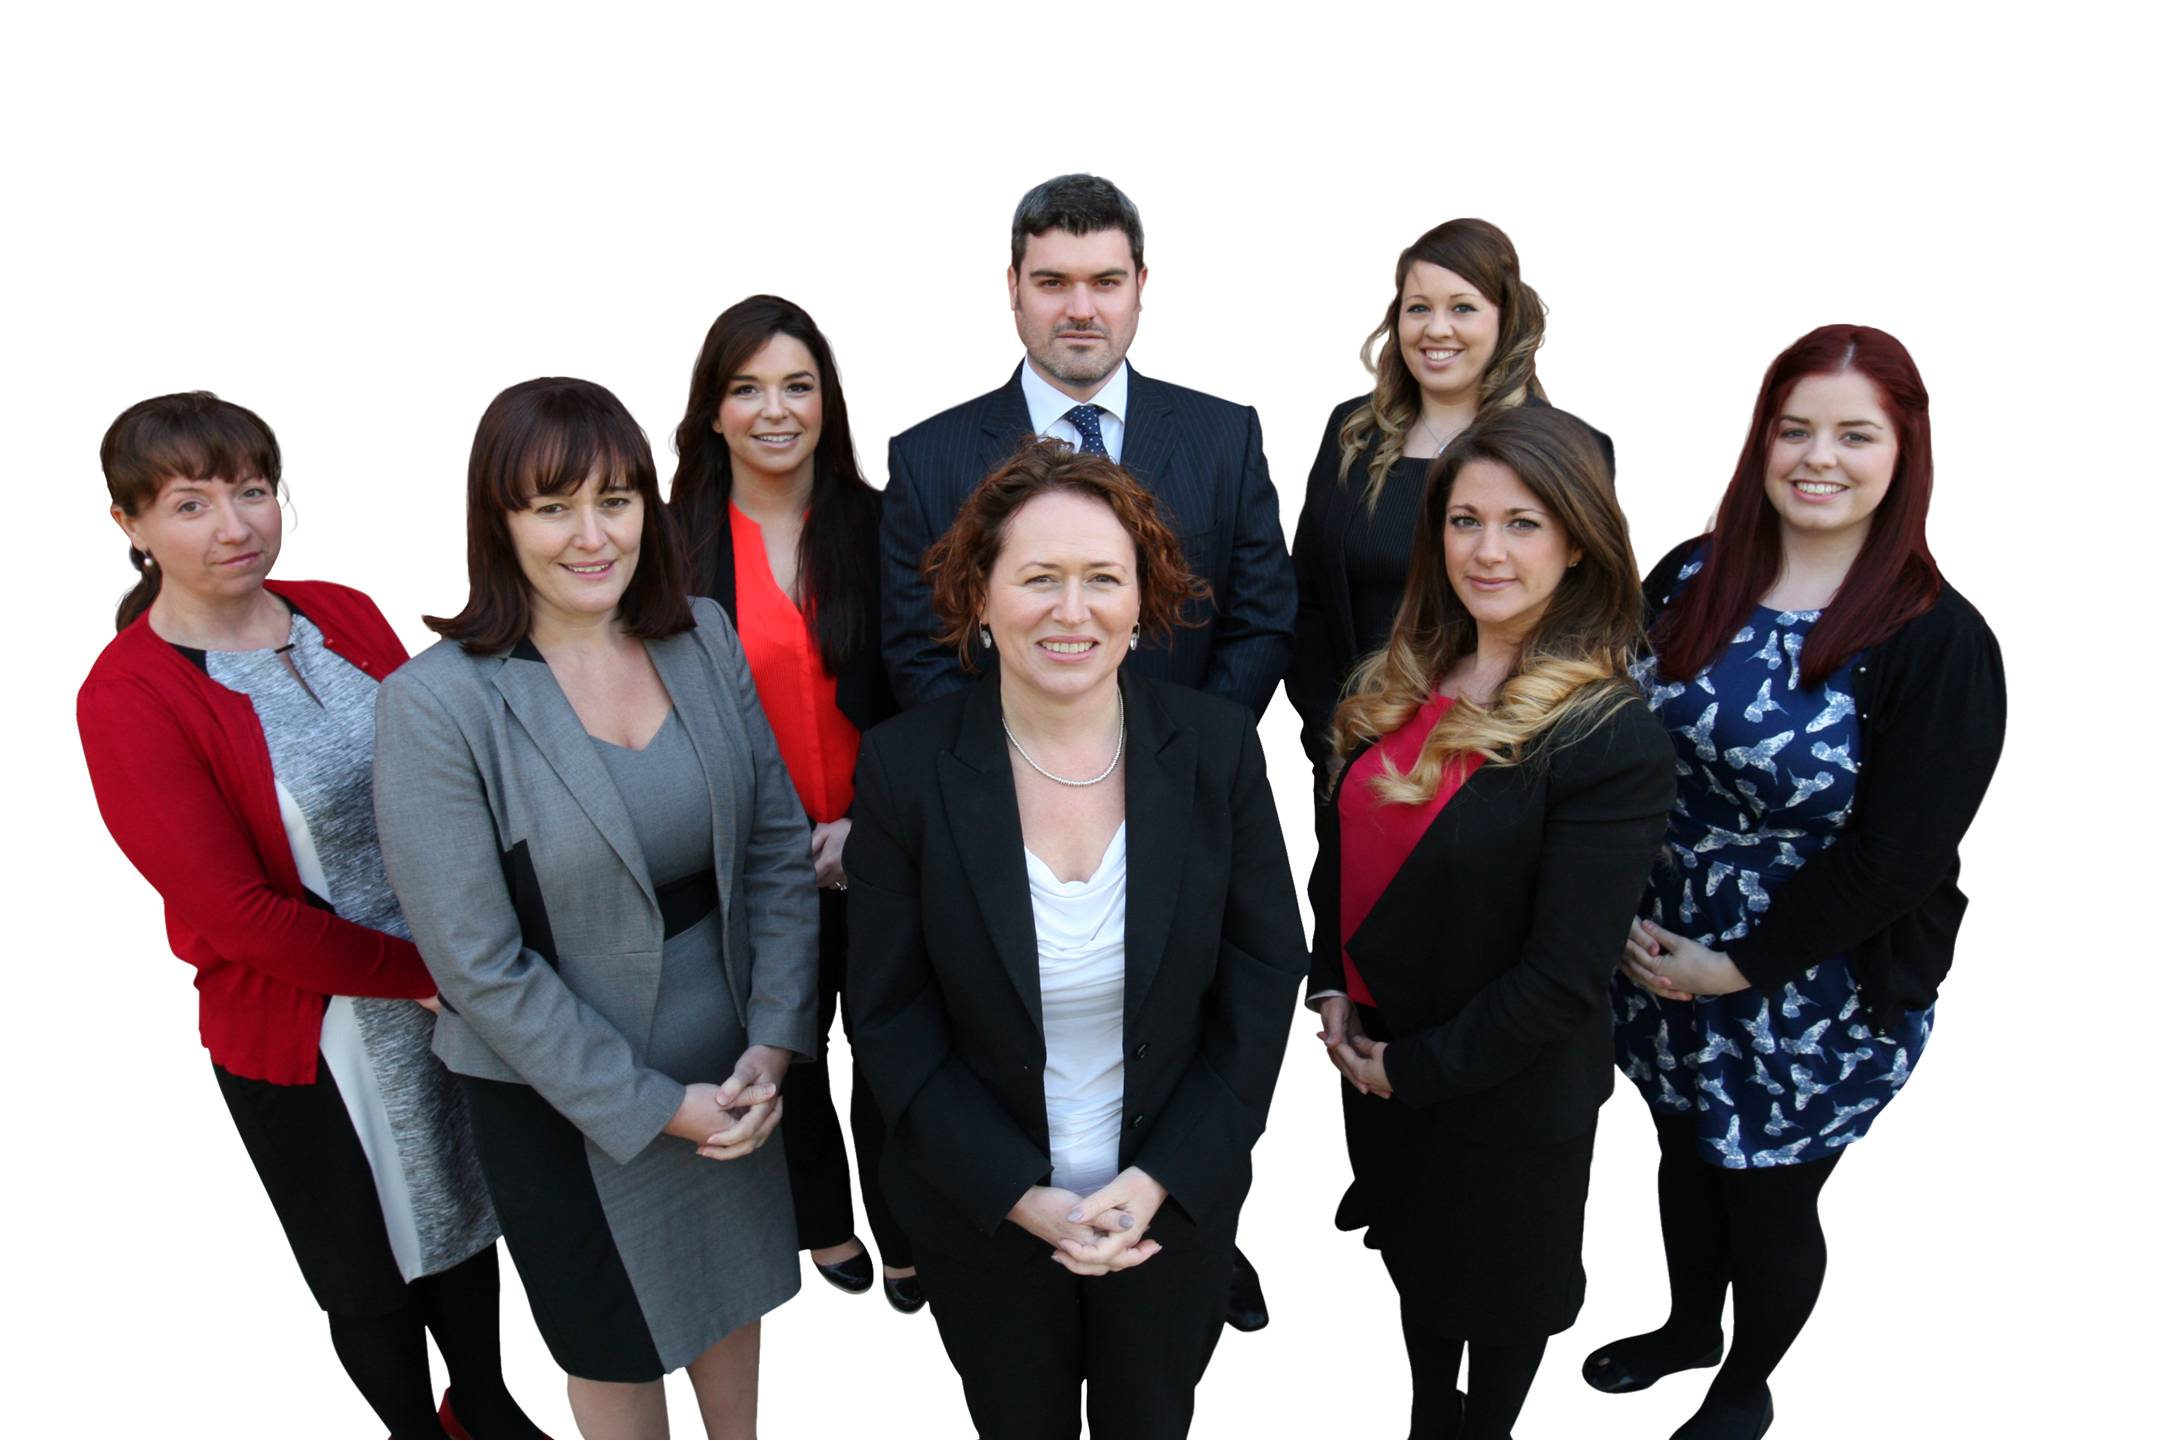 Our uterine cancer expert team. We deal with medical negligence claims arising from misdiagnosis of uterine cancer.